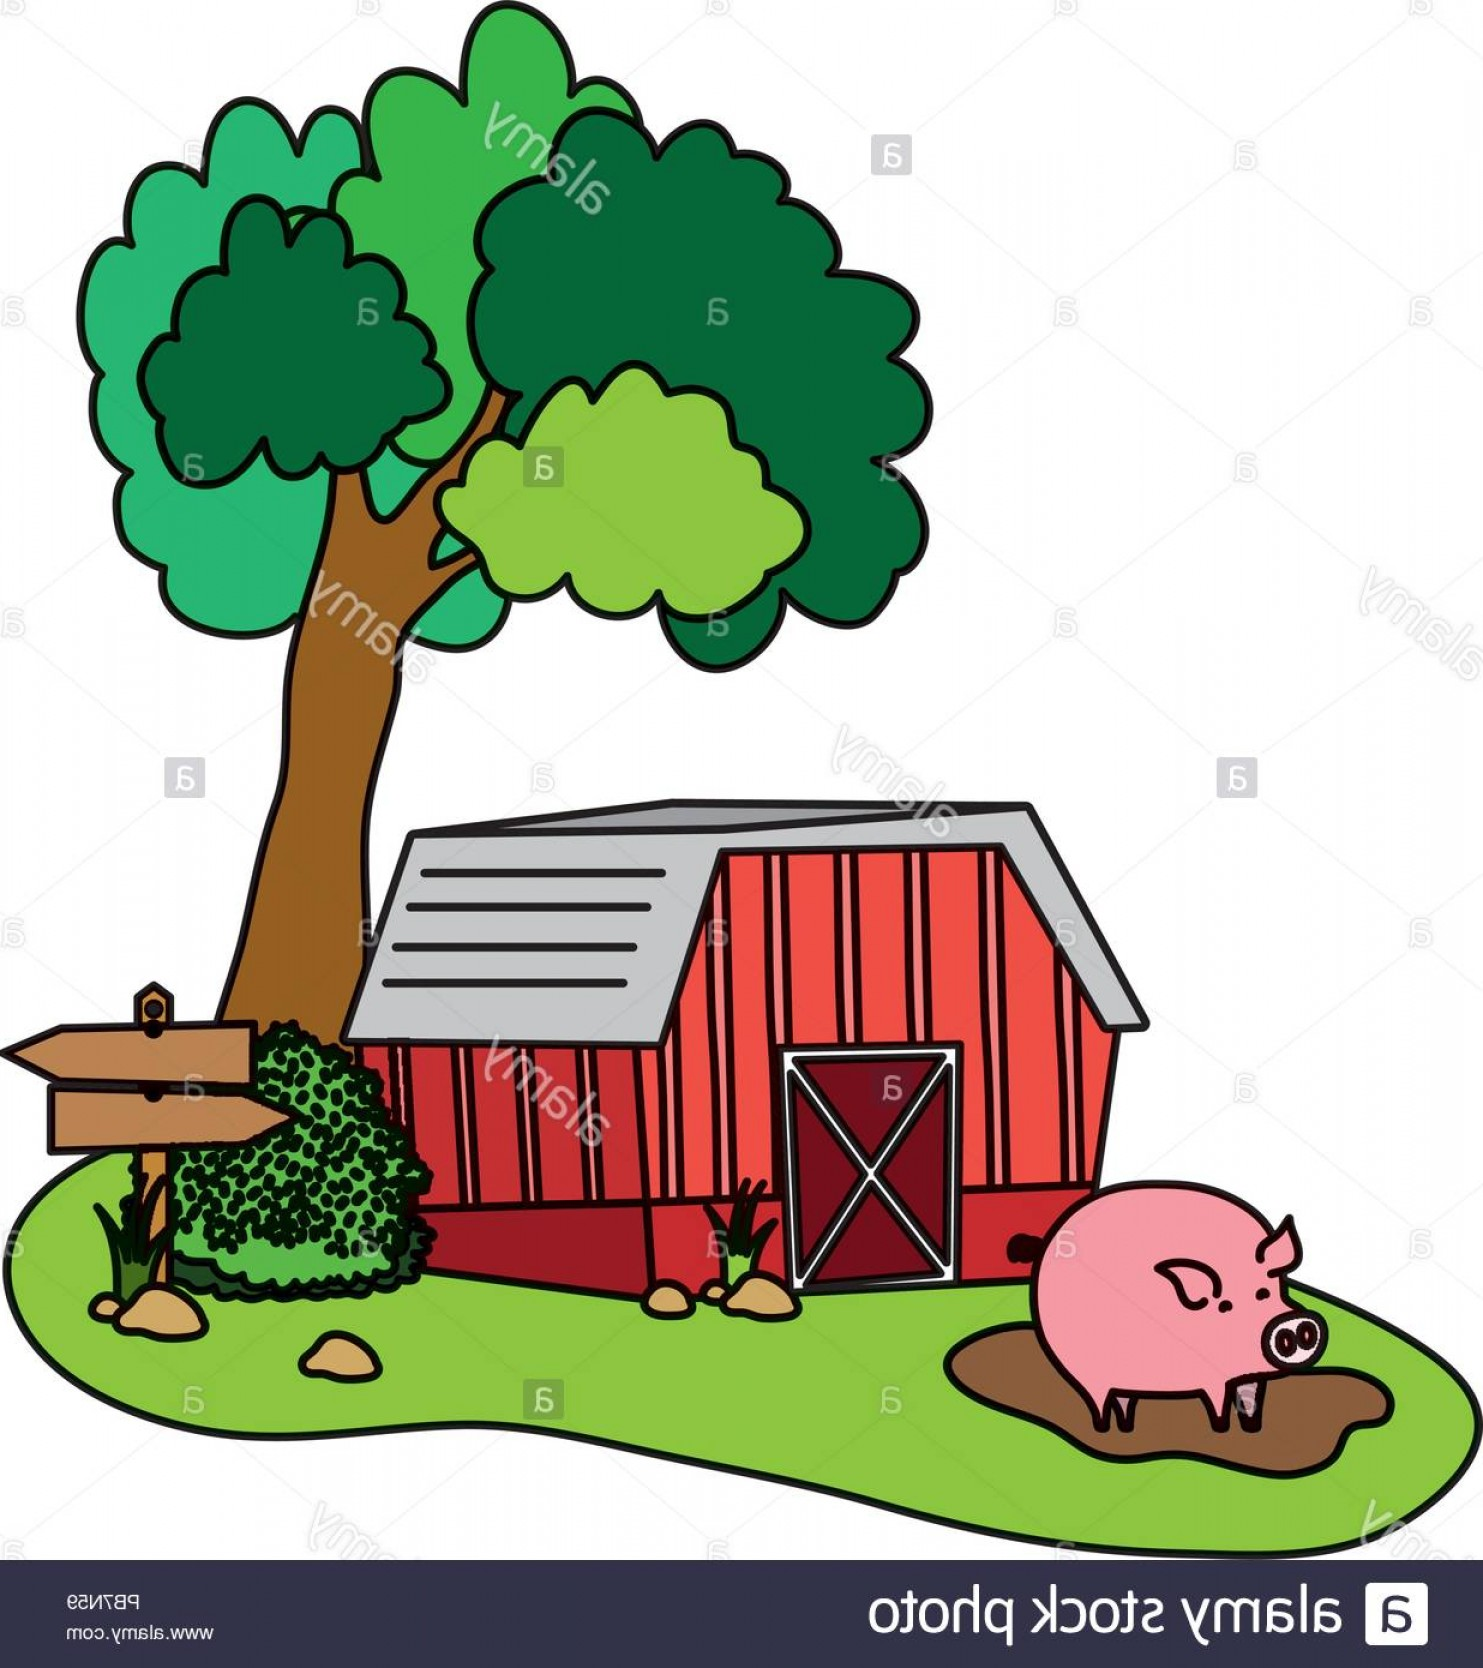 Swamp Vector Art: Color House Farm With Pig Animal In The Swamp Image